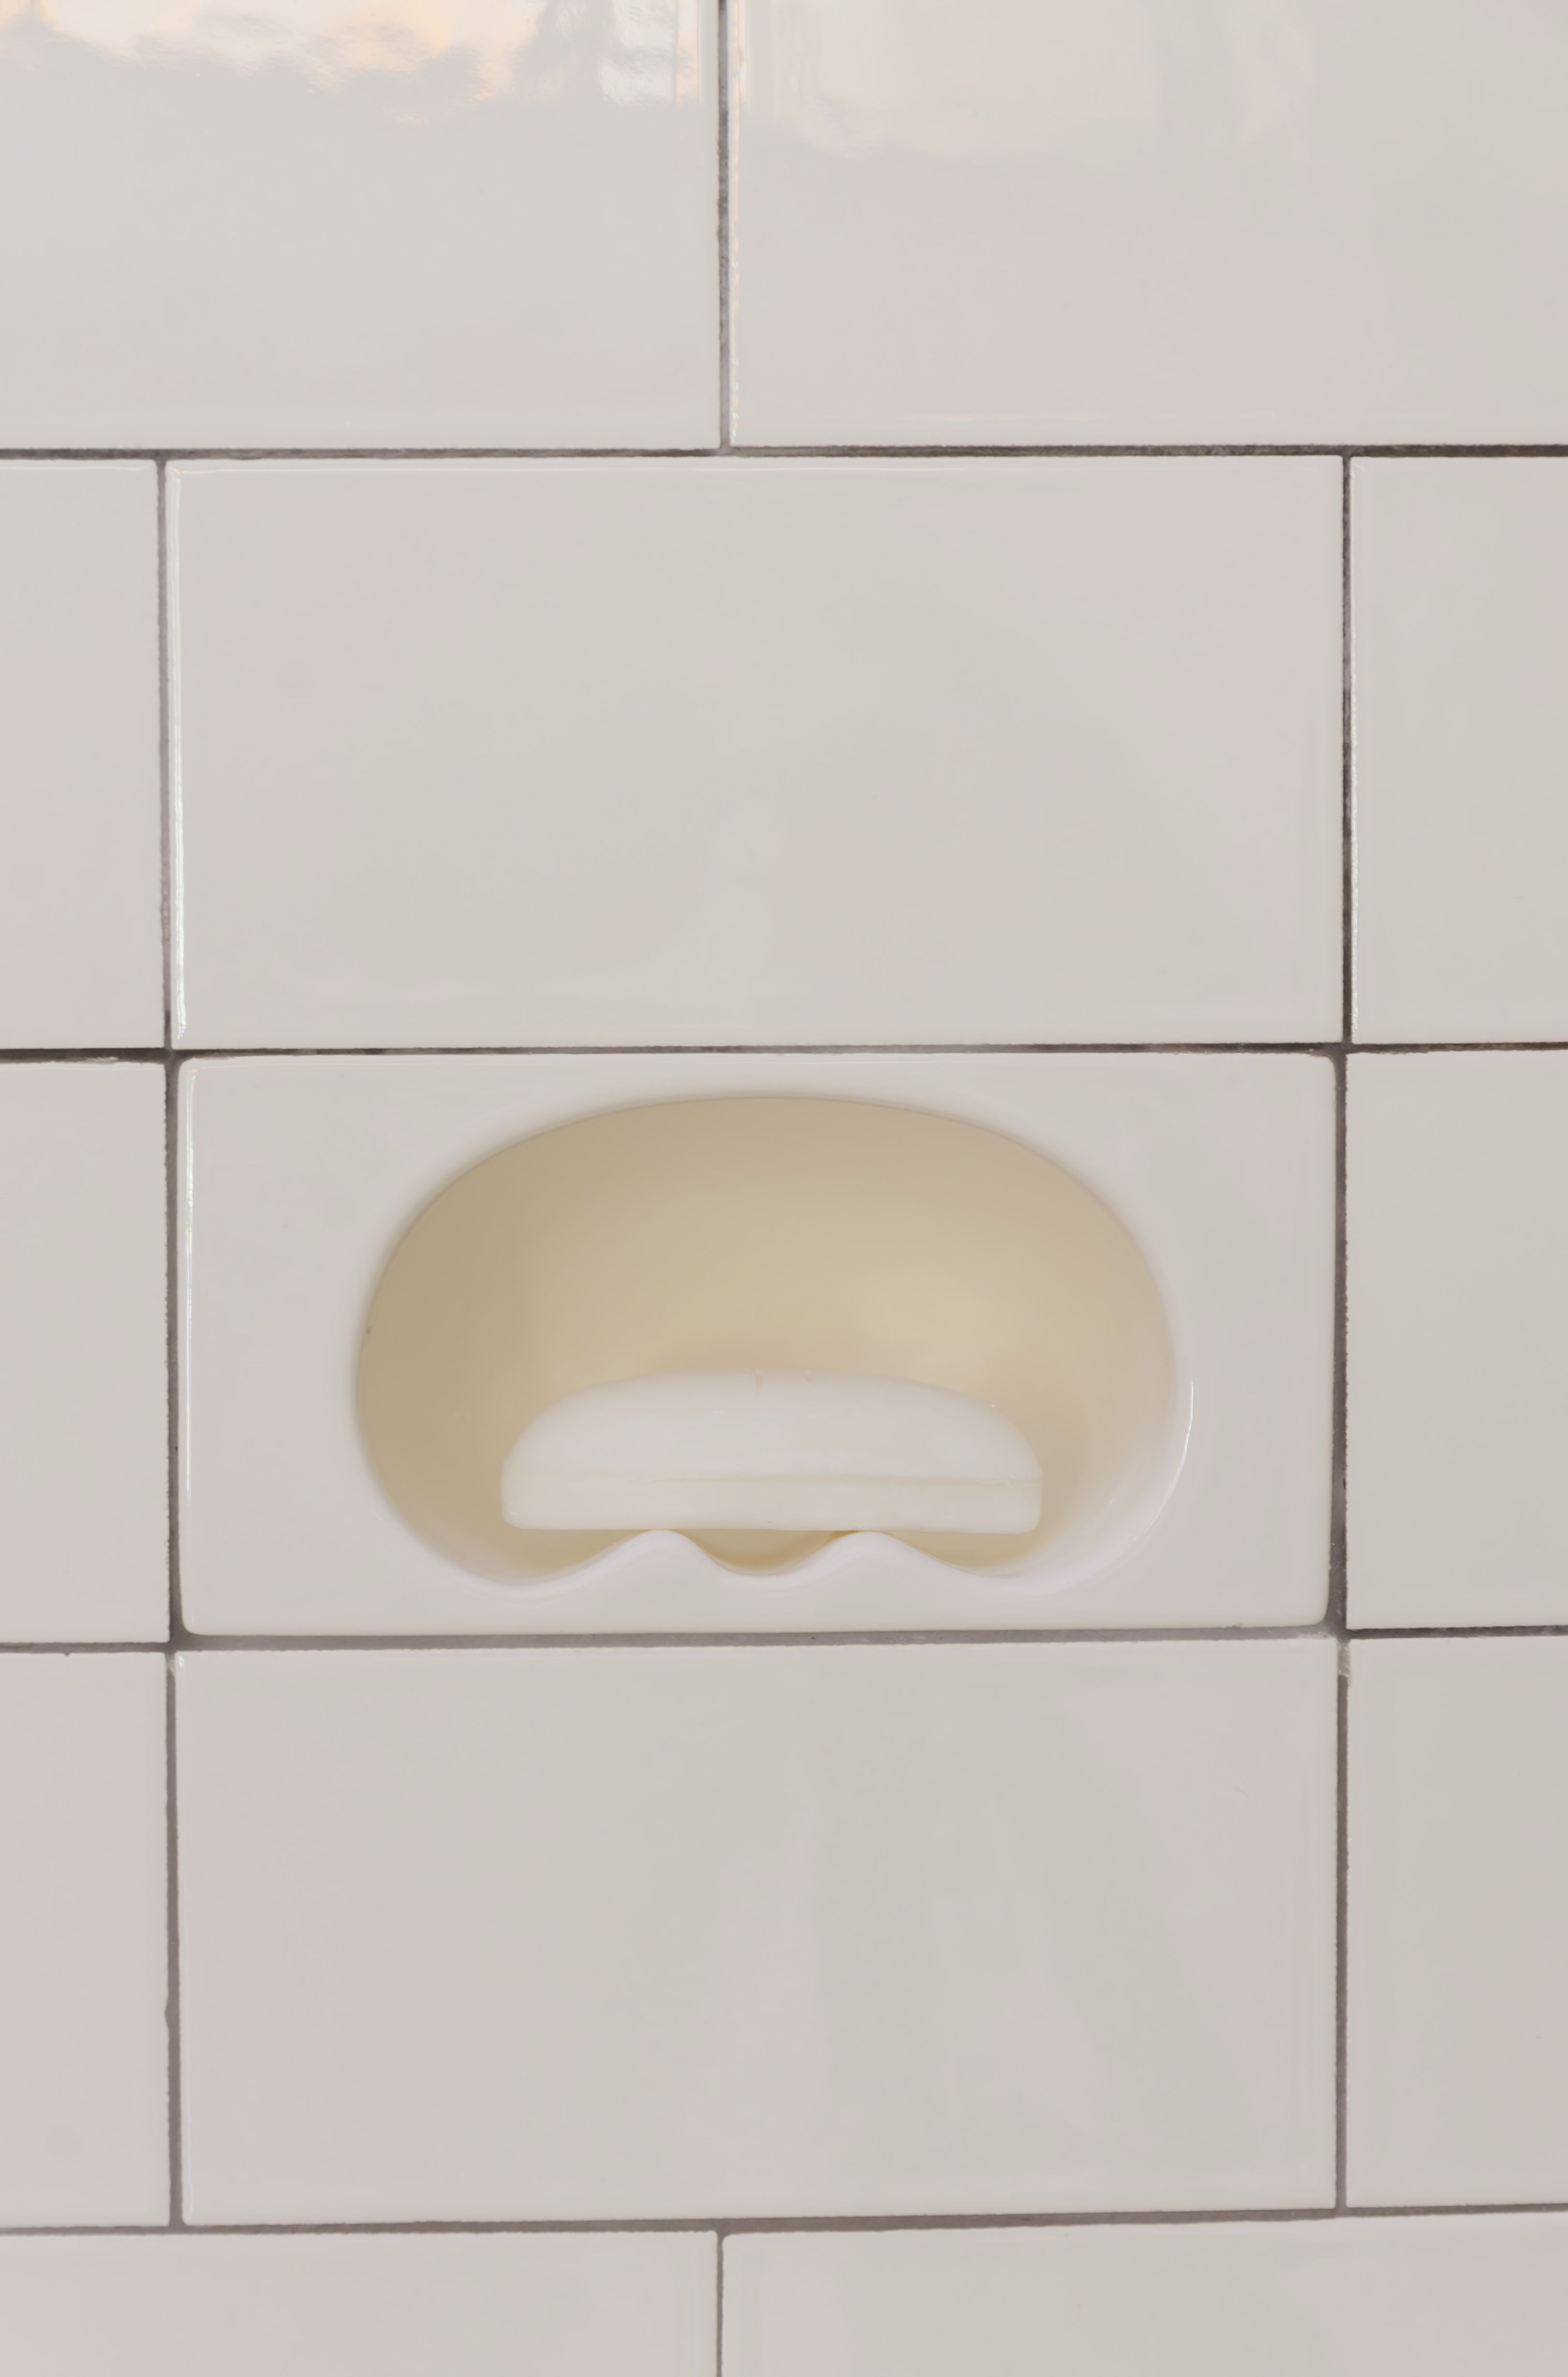 Intergrated Ceramic Fixtures 3 X 6 Recessed Soap Dish Tile